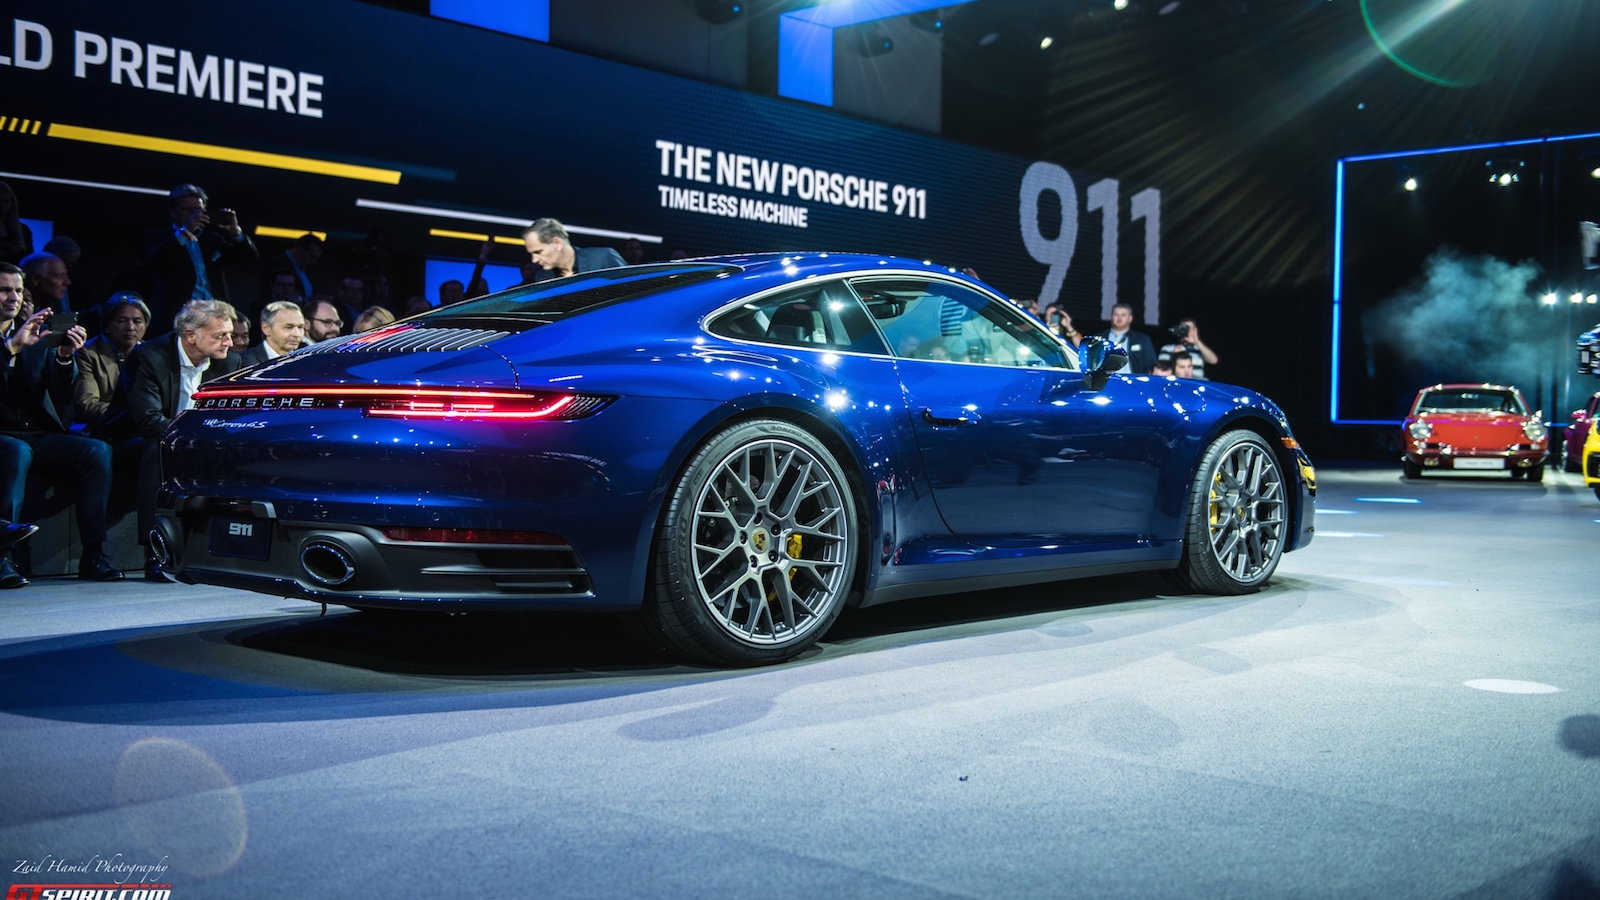 5 Big Changes About the 2020 911